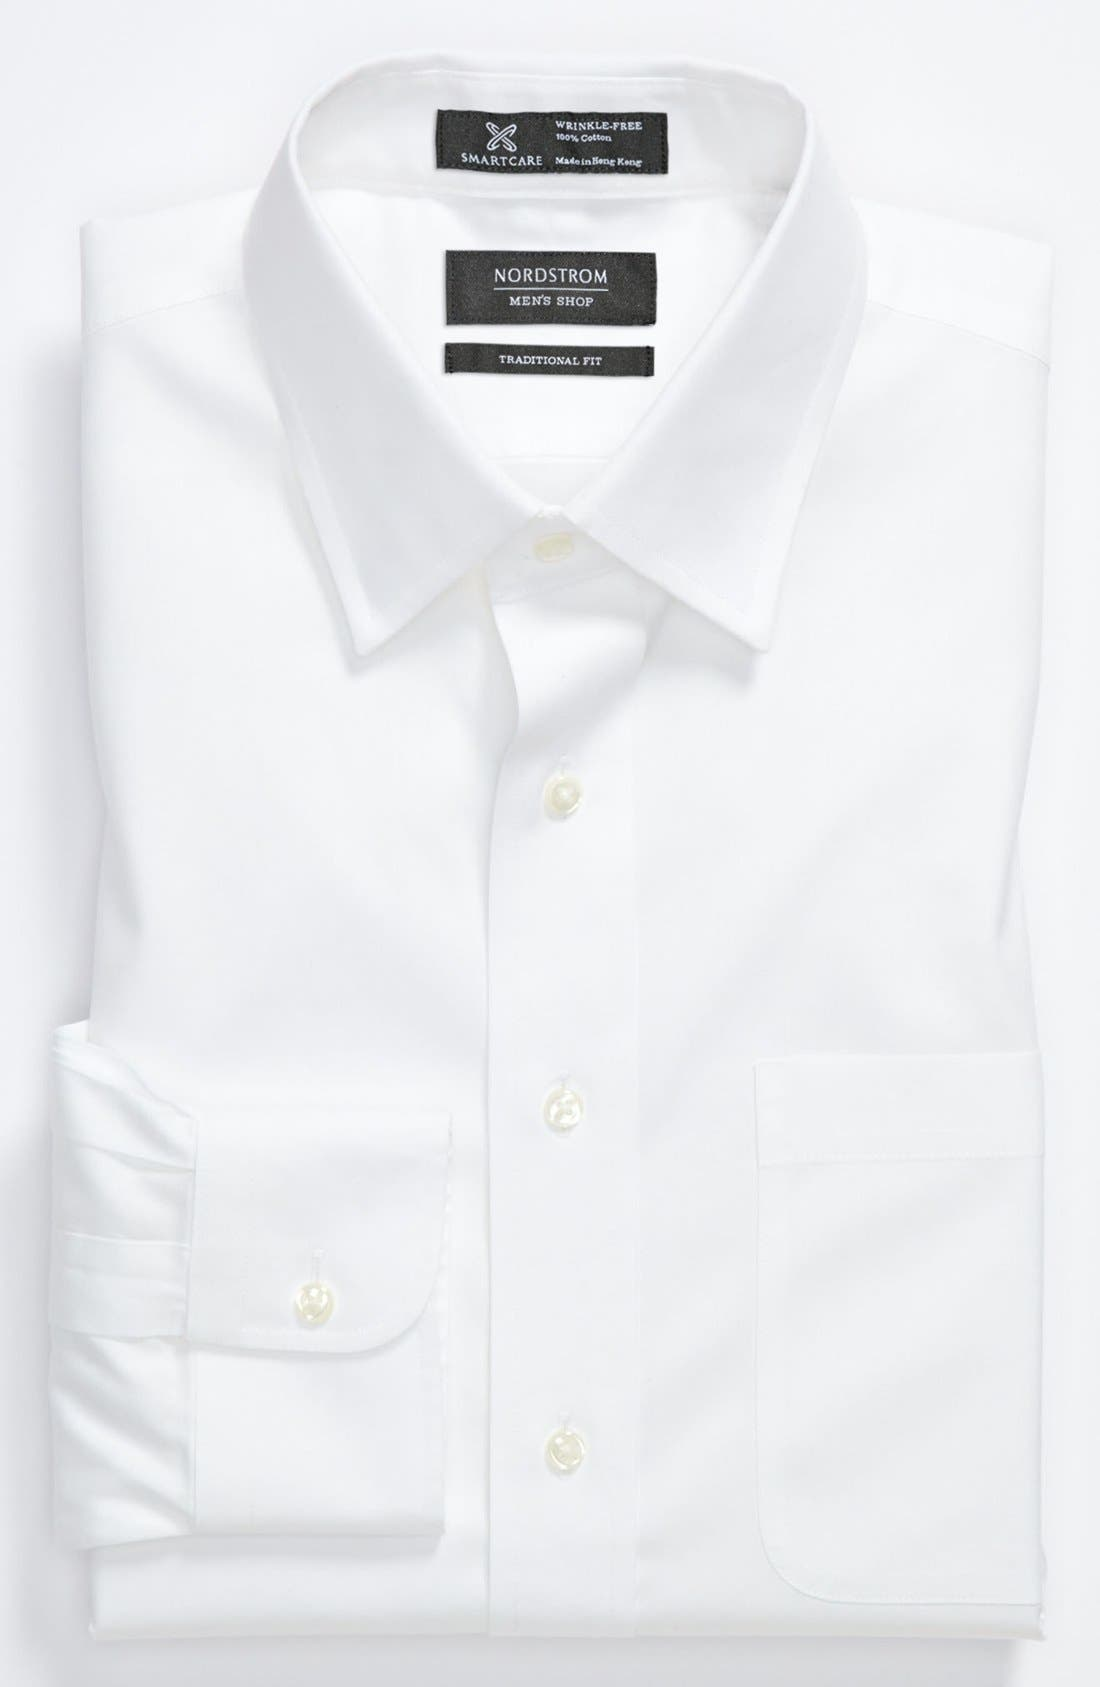 Nordstrom Men's Shop Smartcare™ Traditional Fit Dress Shirt ...